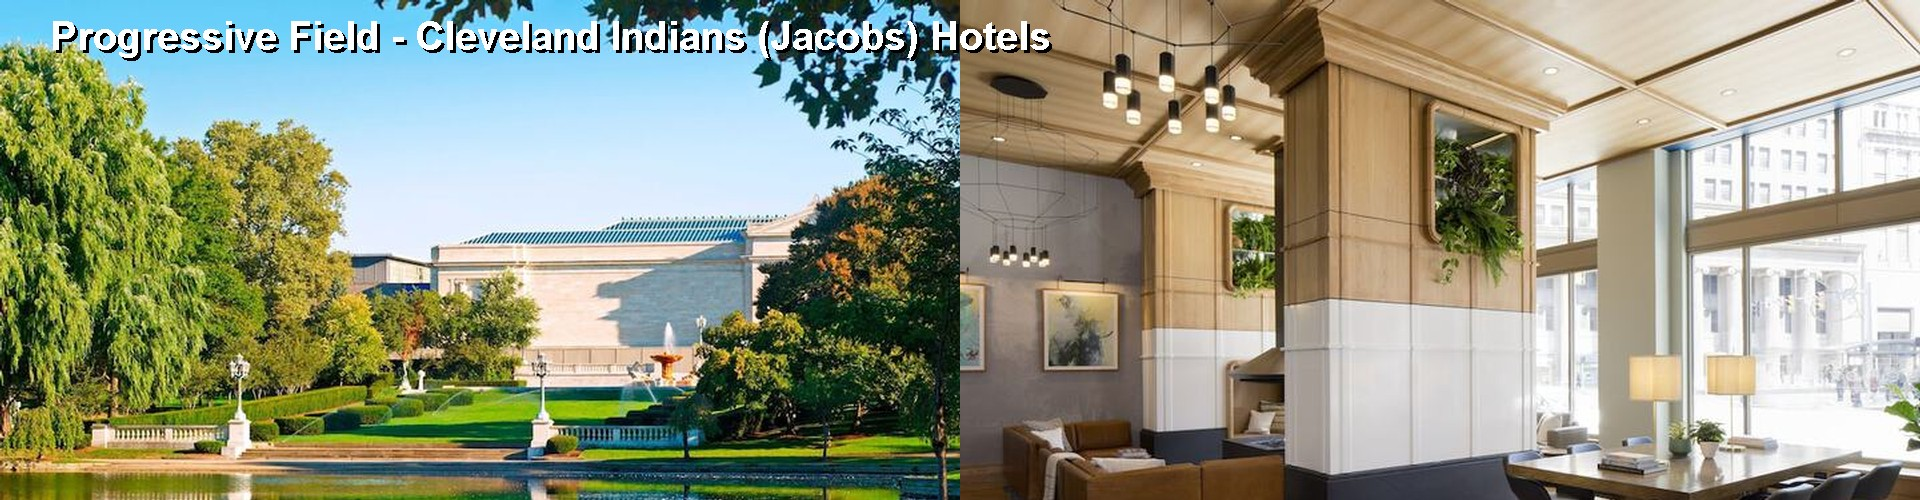 Hotels Near Progressive Field Cleveland Indians (Jacobs) in